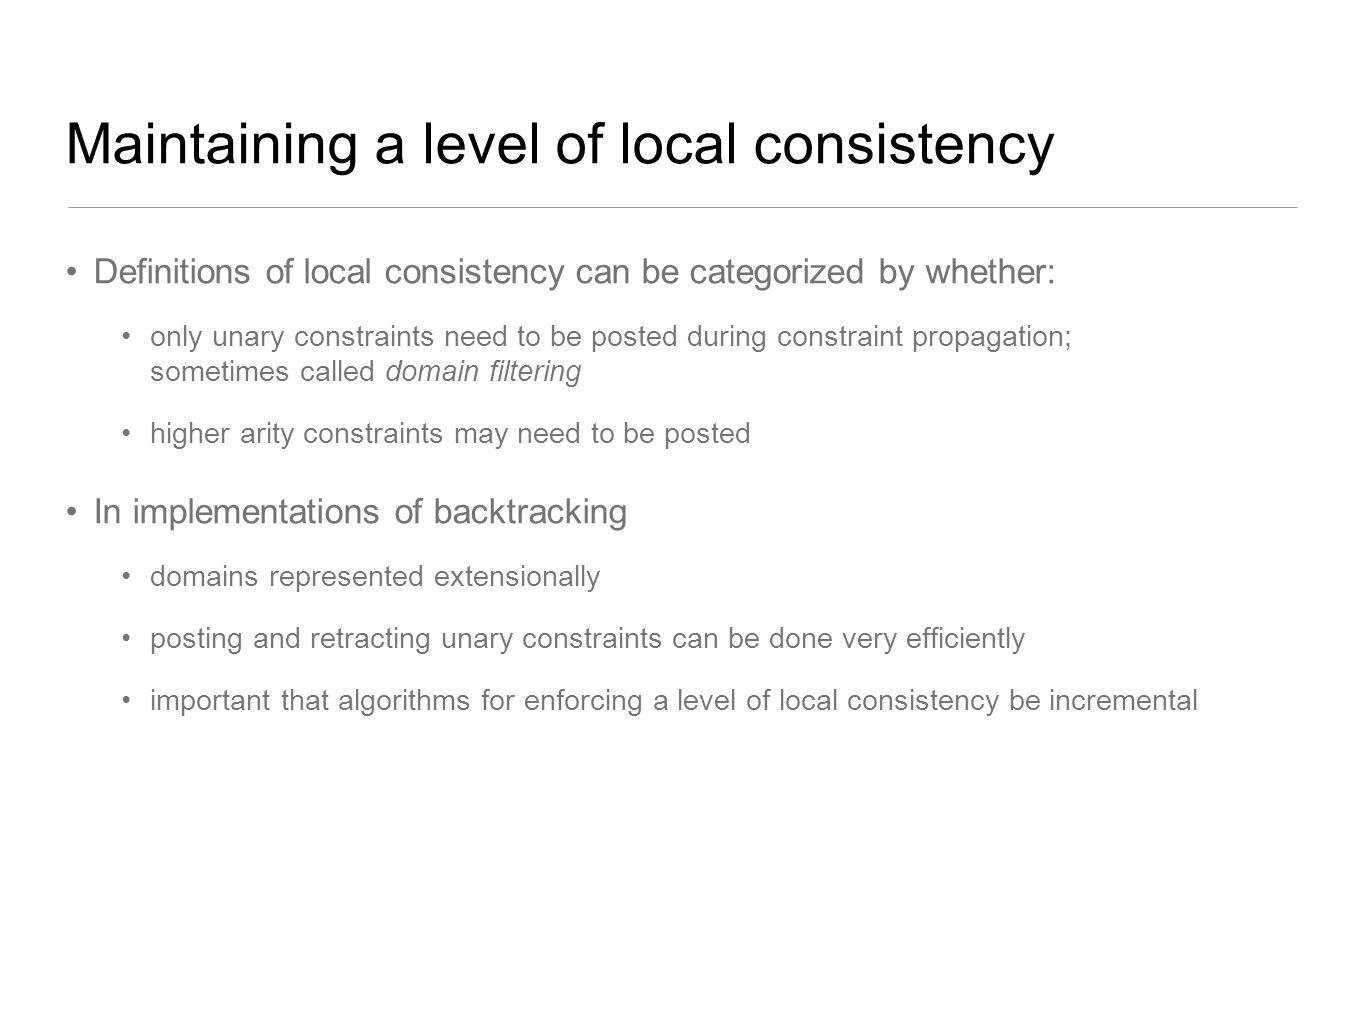 Maintaining a level of local consistency